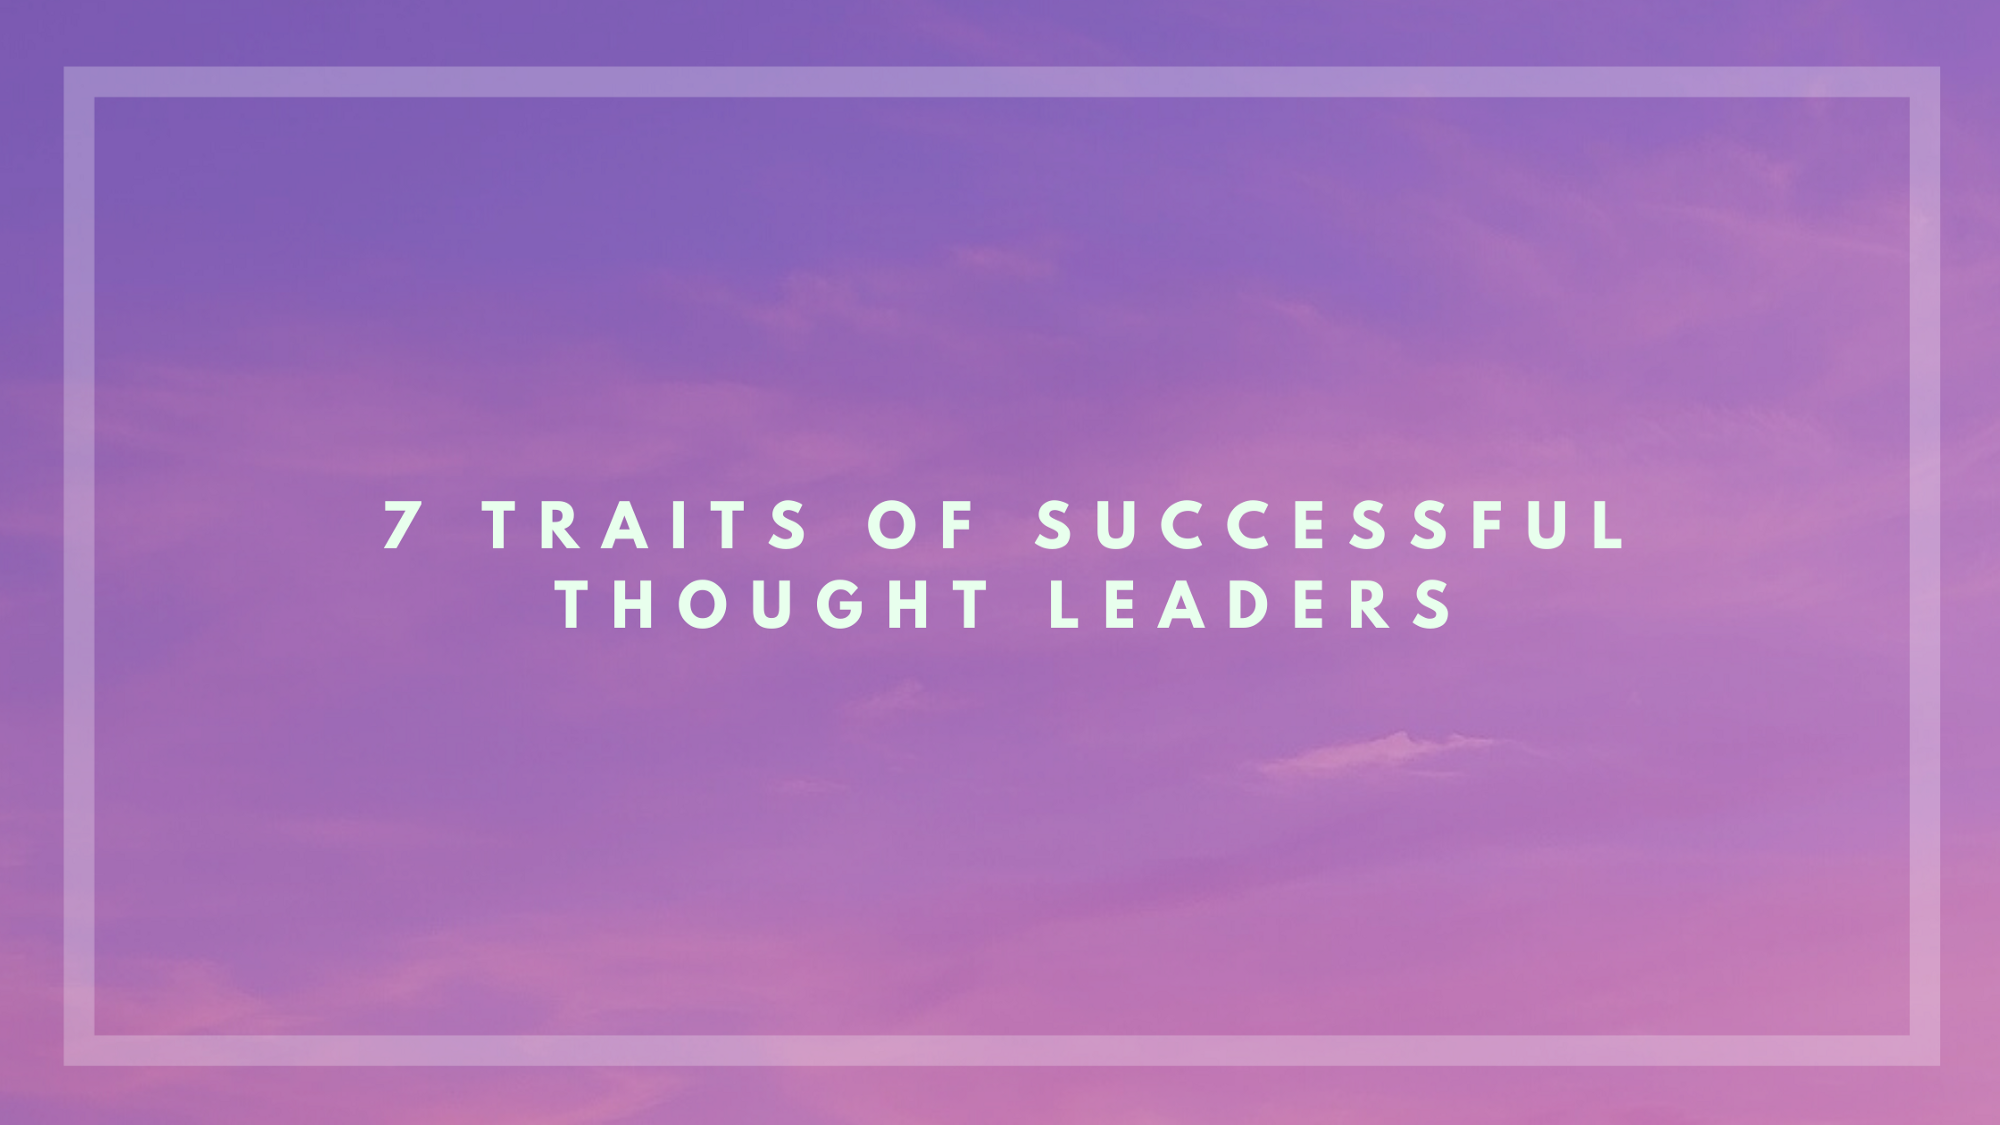 The 7 traits of successful thought leaders.